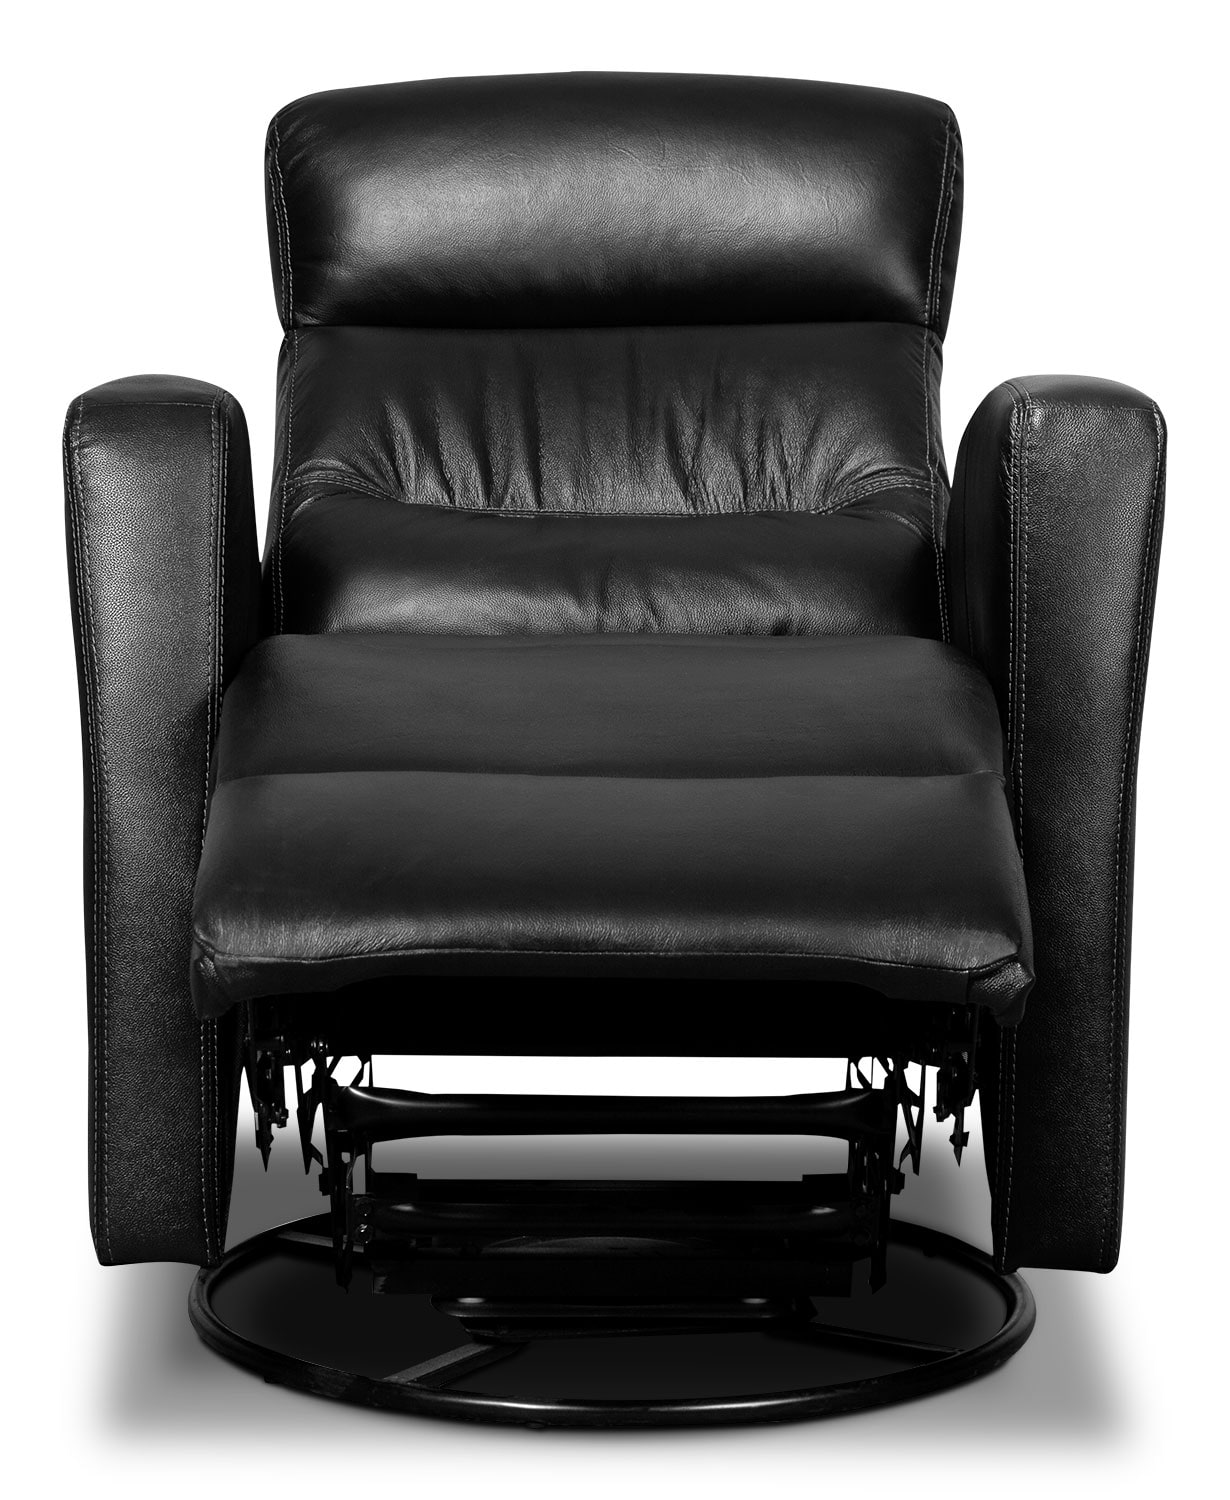 Real Leather Recliner Chairs Penny Genuine Leather Swivel Rocker Reclining Chair